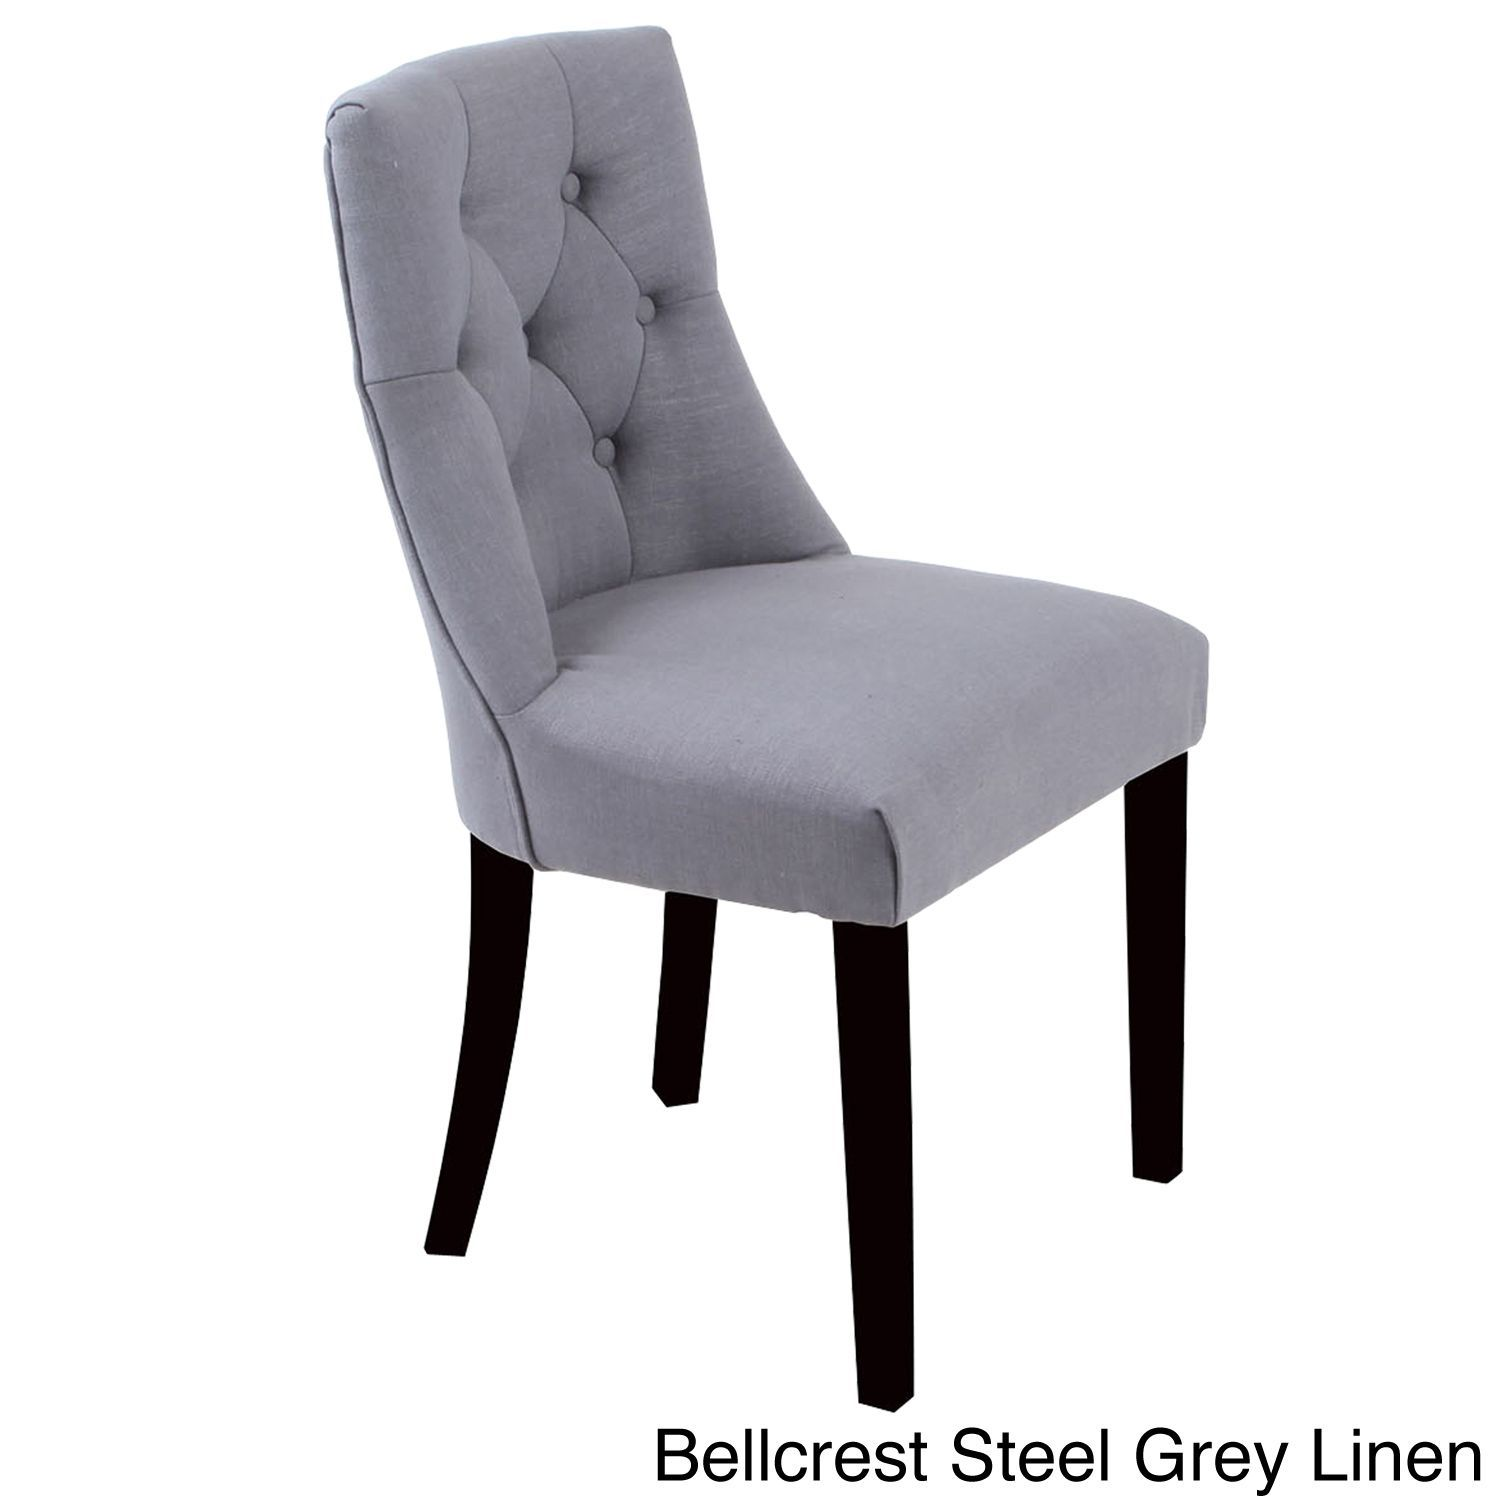 Bellcrest Buttontufted Upholstered Dining Chairs Set Of 2 Best Leather Dining Room Chairs With Arms Design Decoration